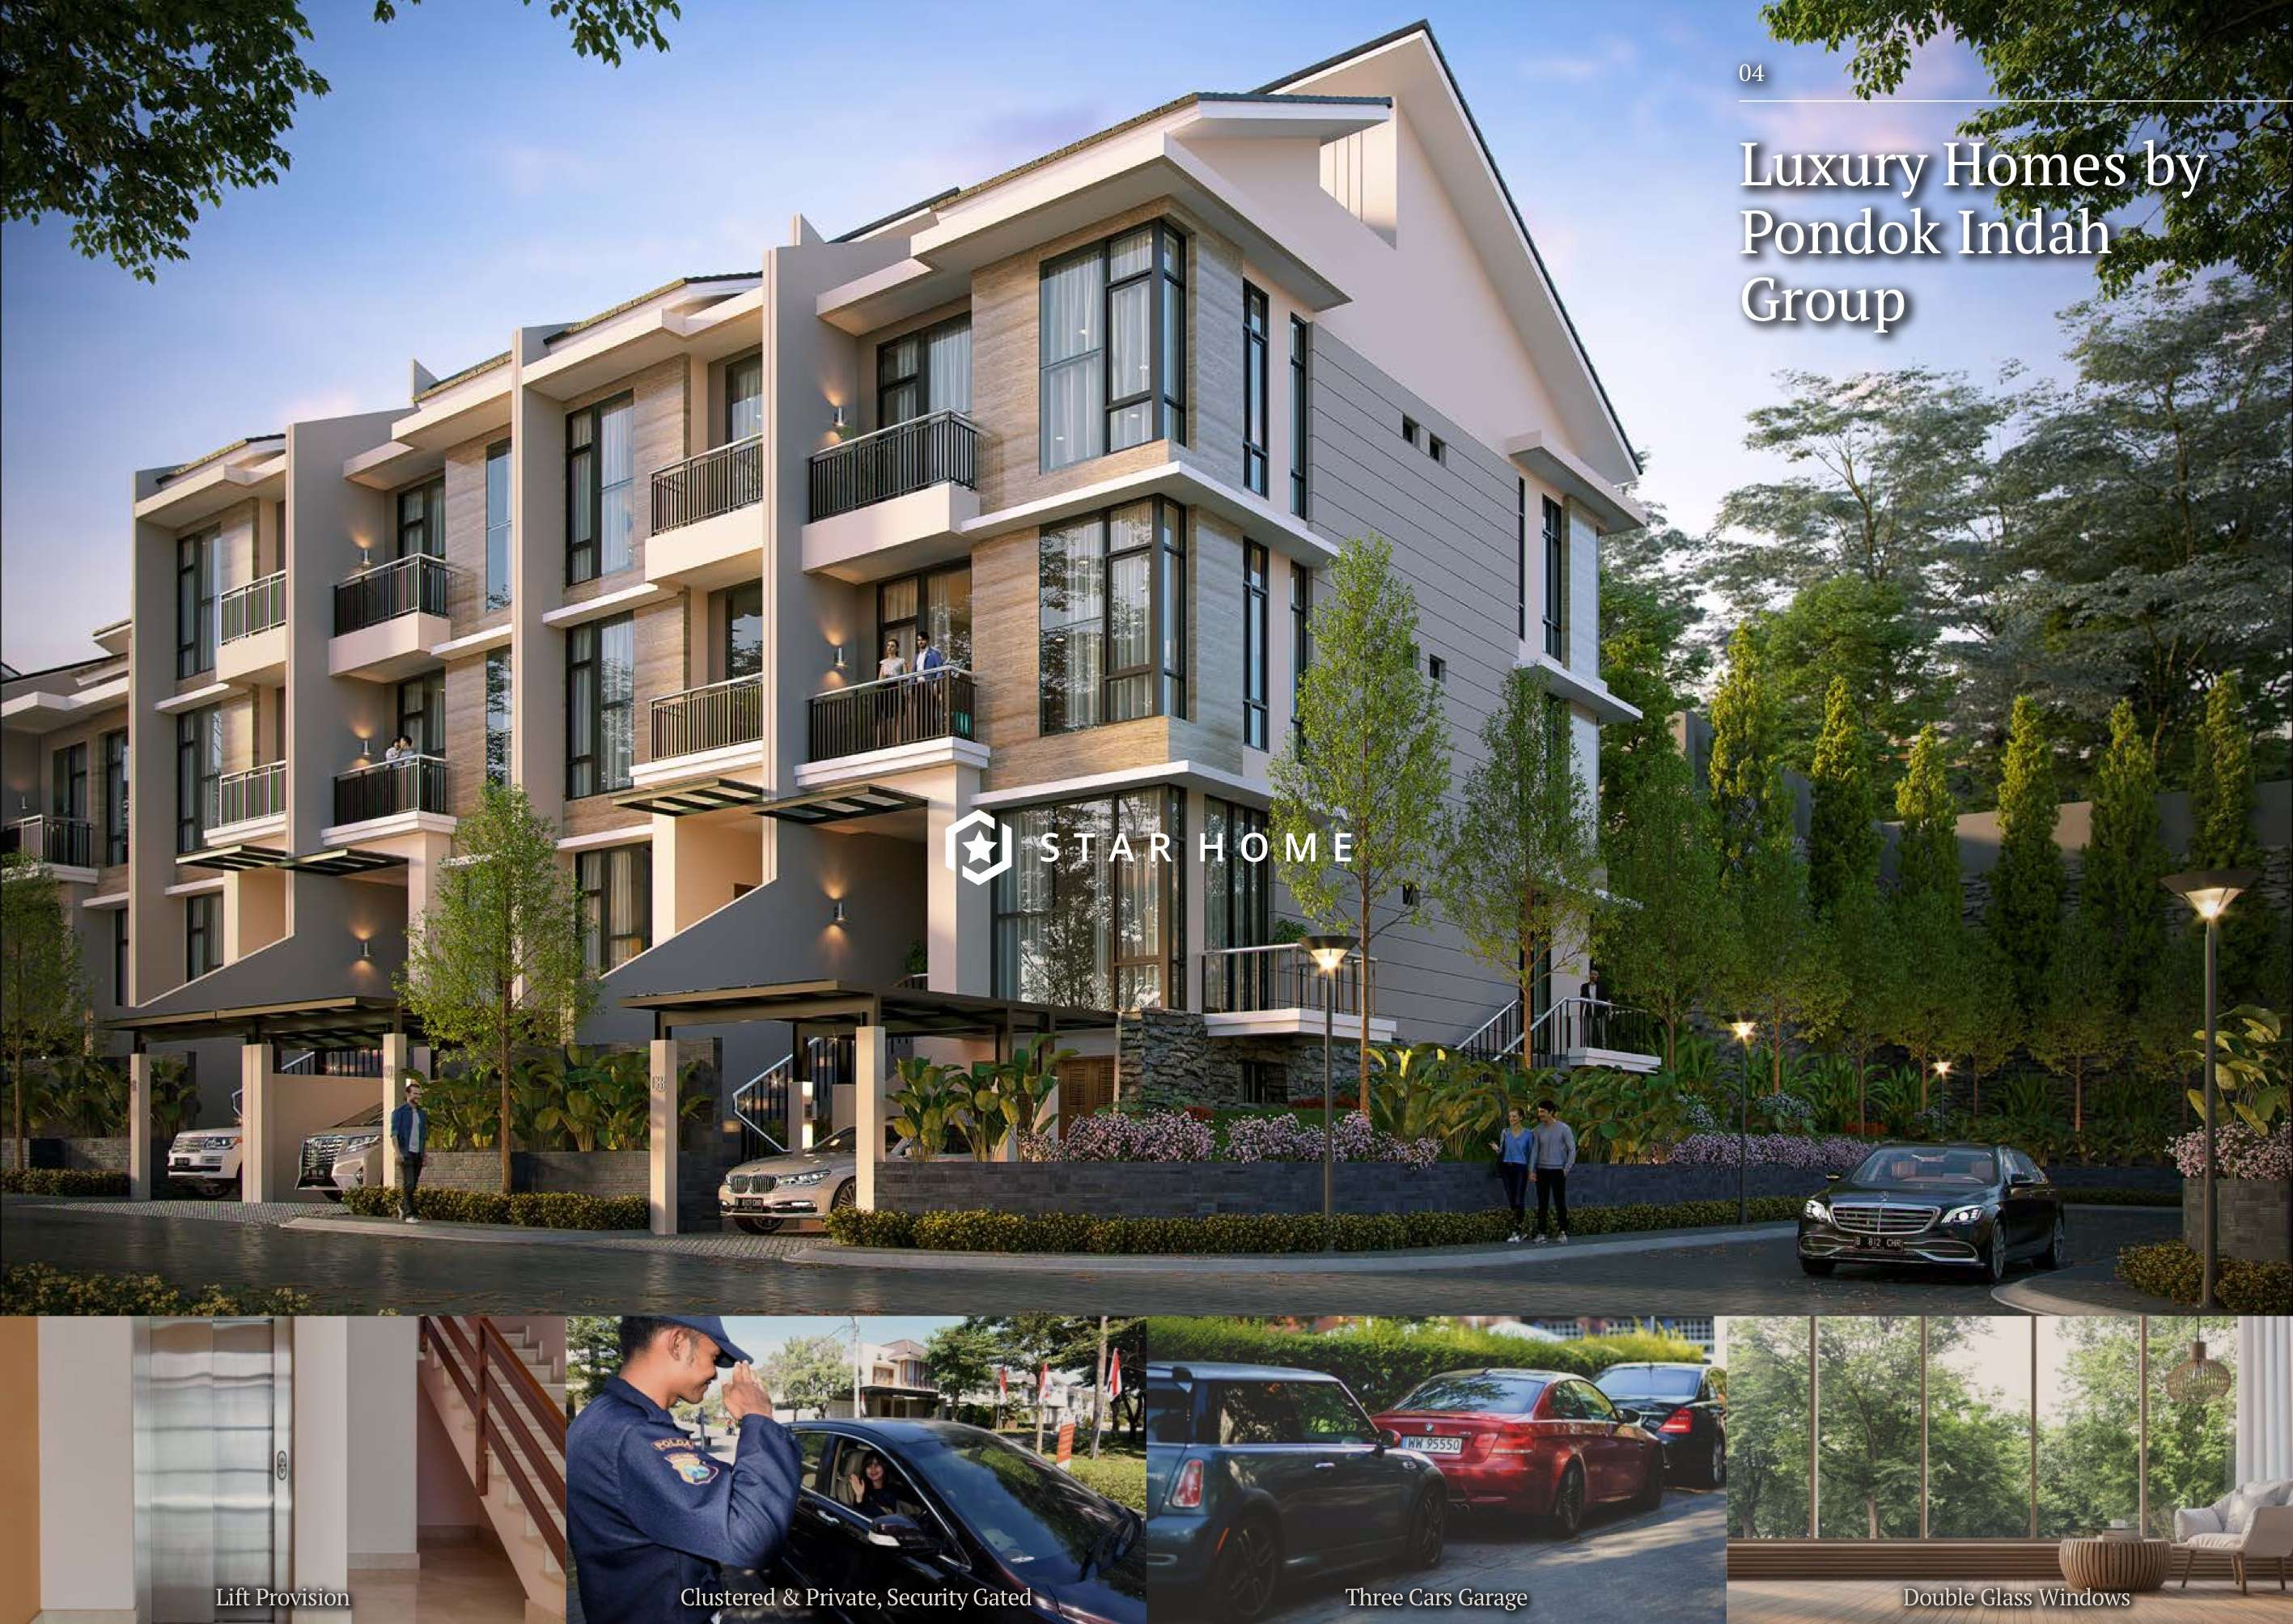 pondok-indah-townhouse-bluebell-midle-1-2